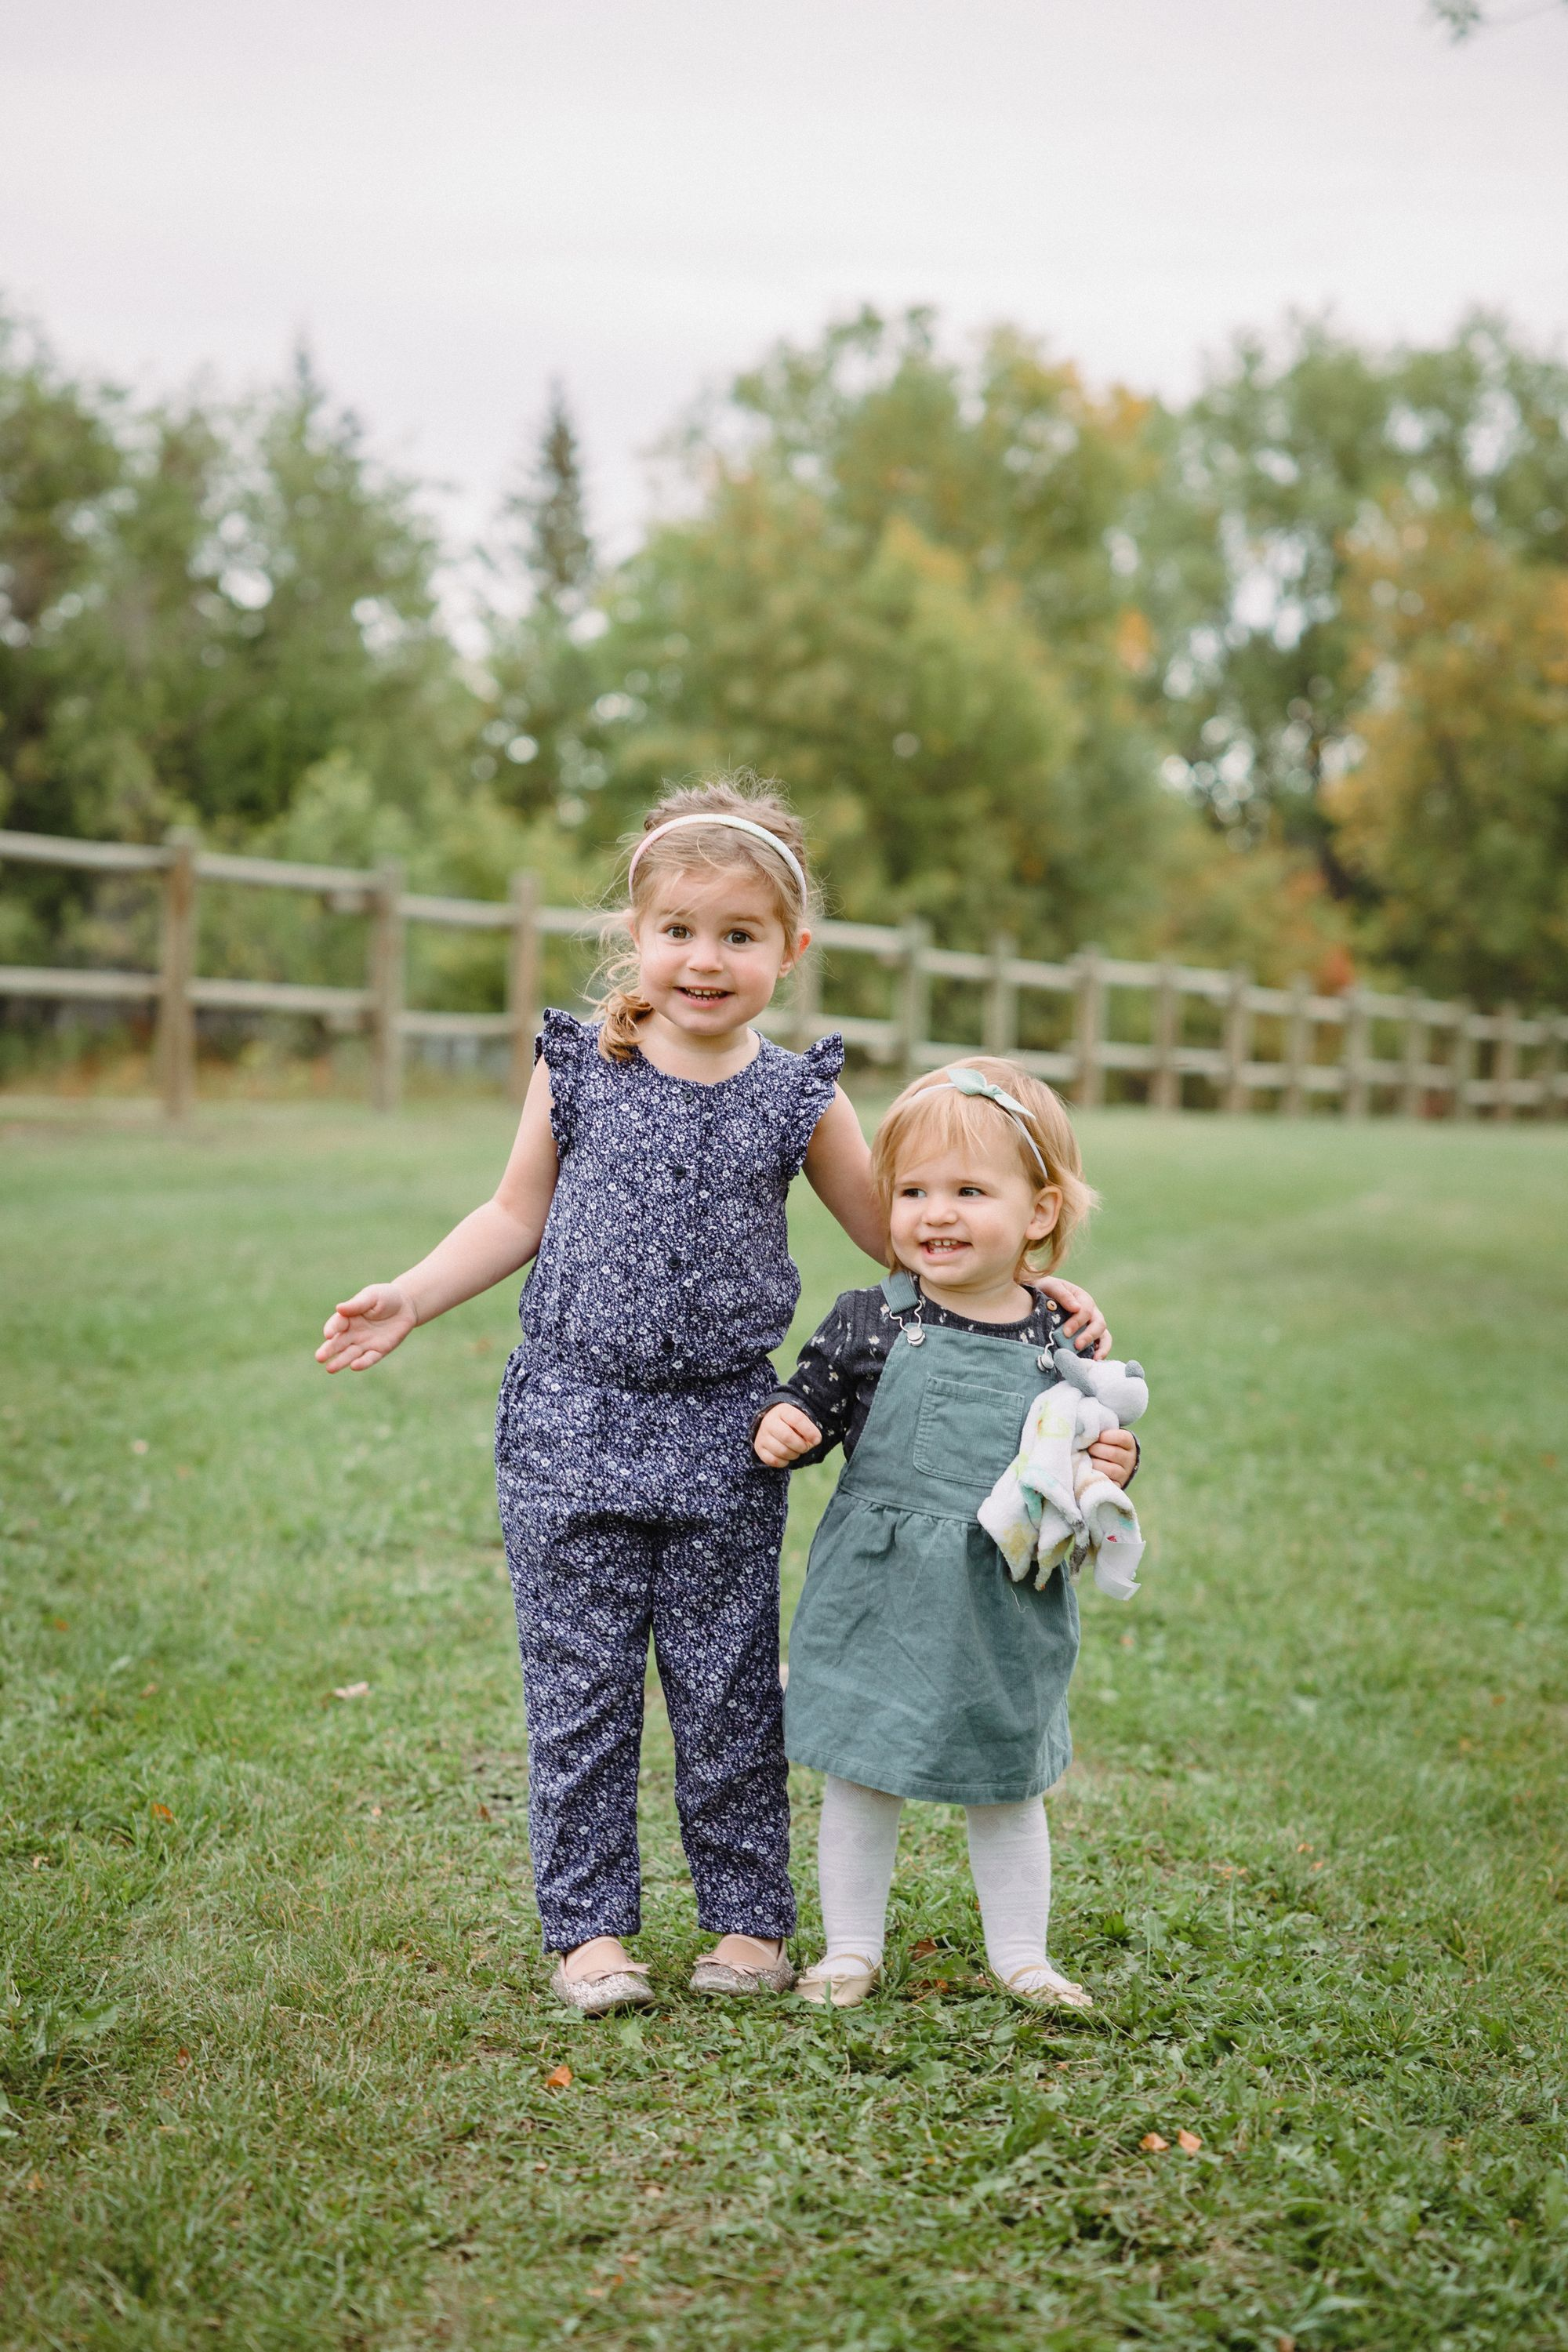 Emryn at 3 1/2 years old. Shae at 1 1/2 years old. For my recollection, of course.